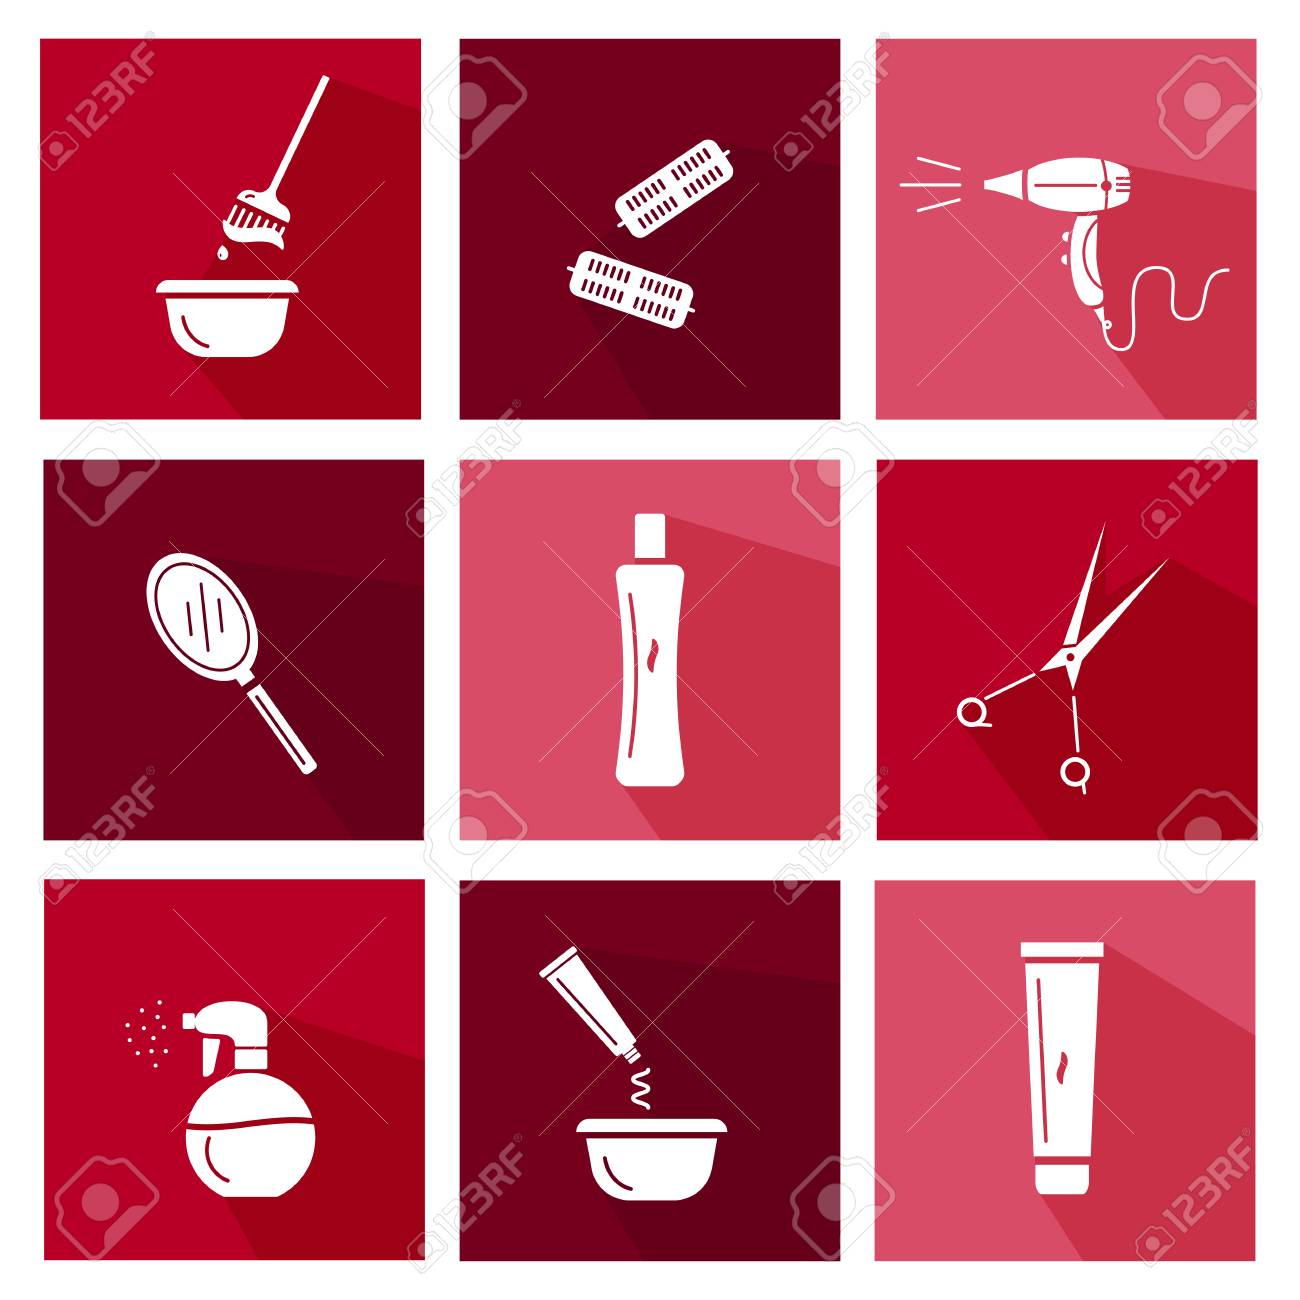 Hair Salon Tools Flat Icons Co Ection Illustration Of Different